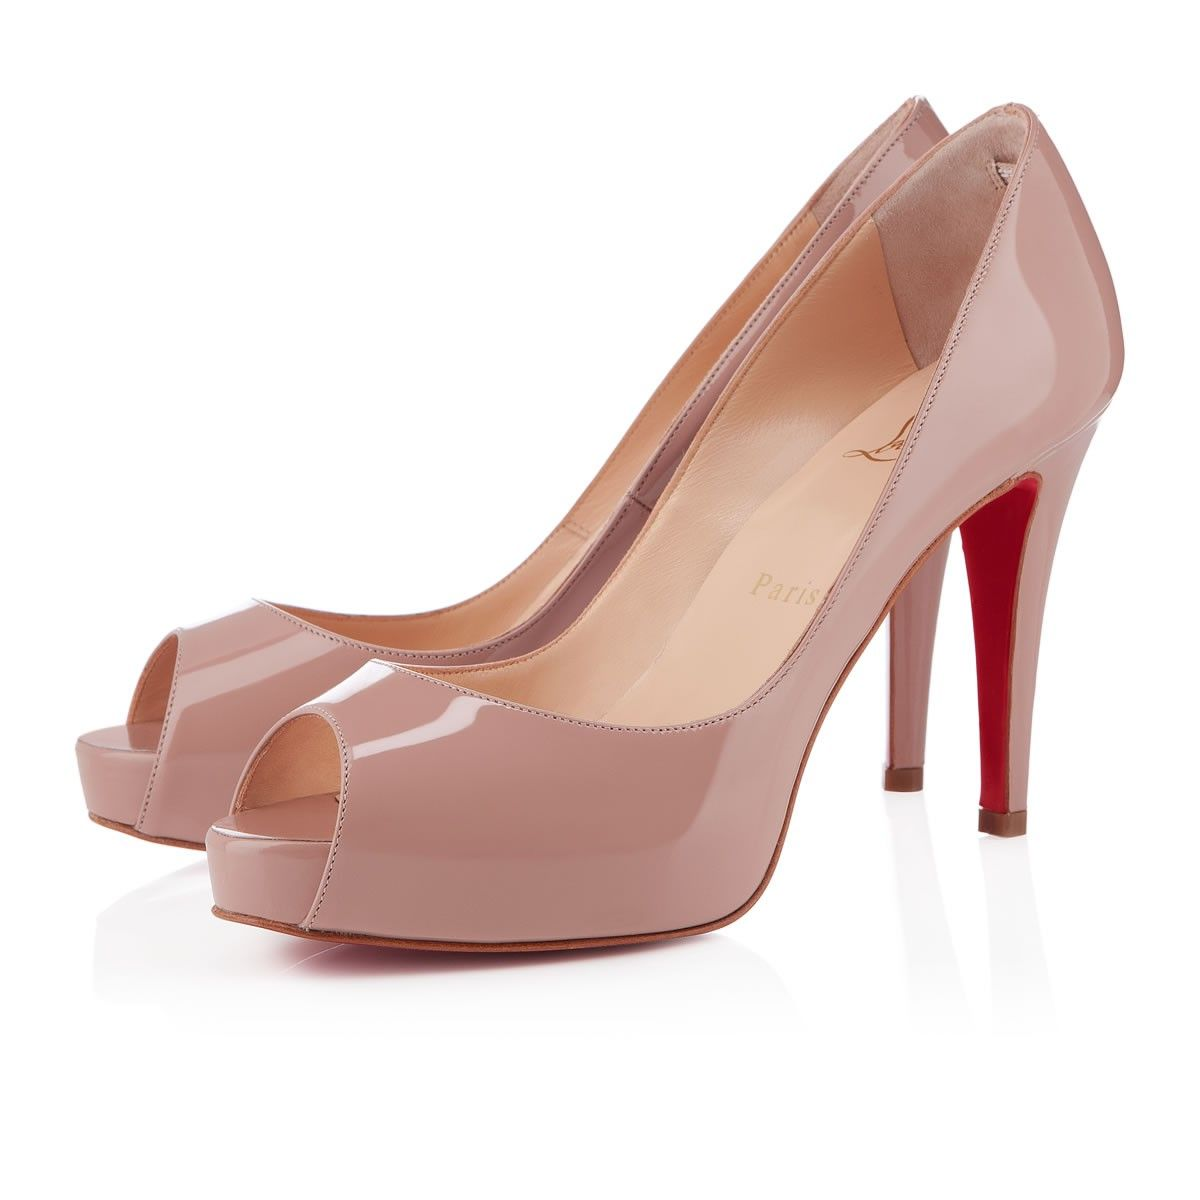 christian louboutin very prive 100mm peep toe pumps nude i like rh pinterest com christian louboutin peep toe pumps black